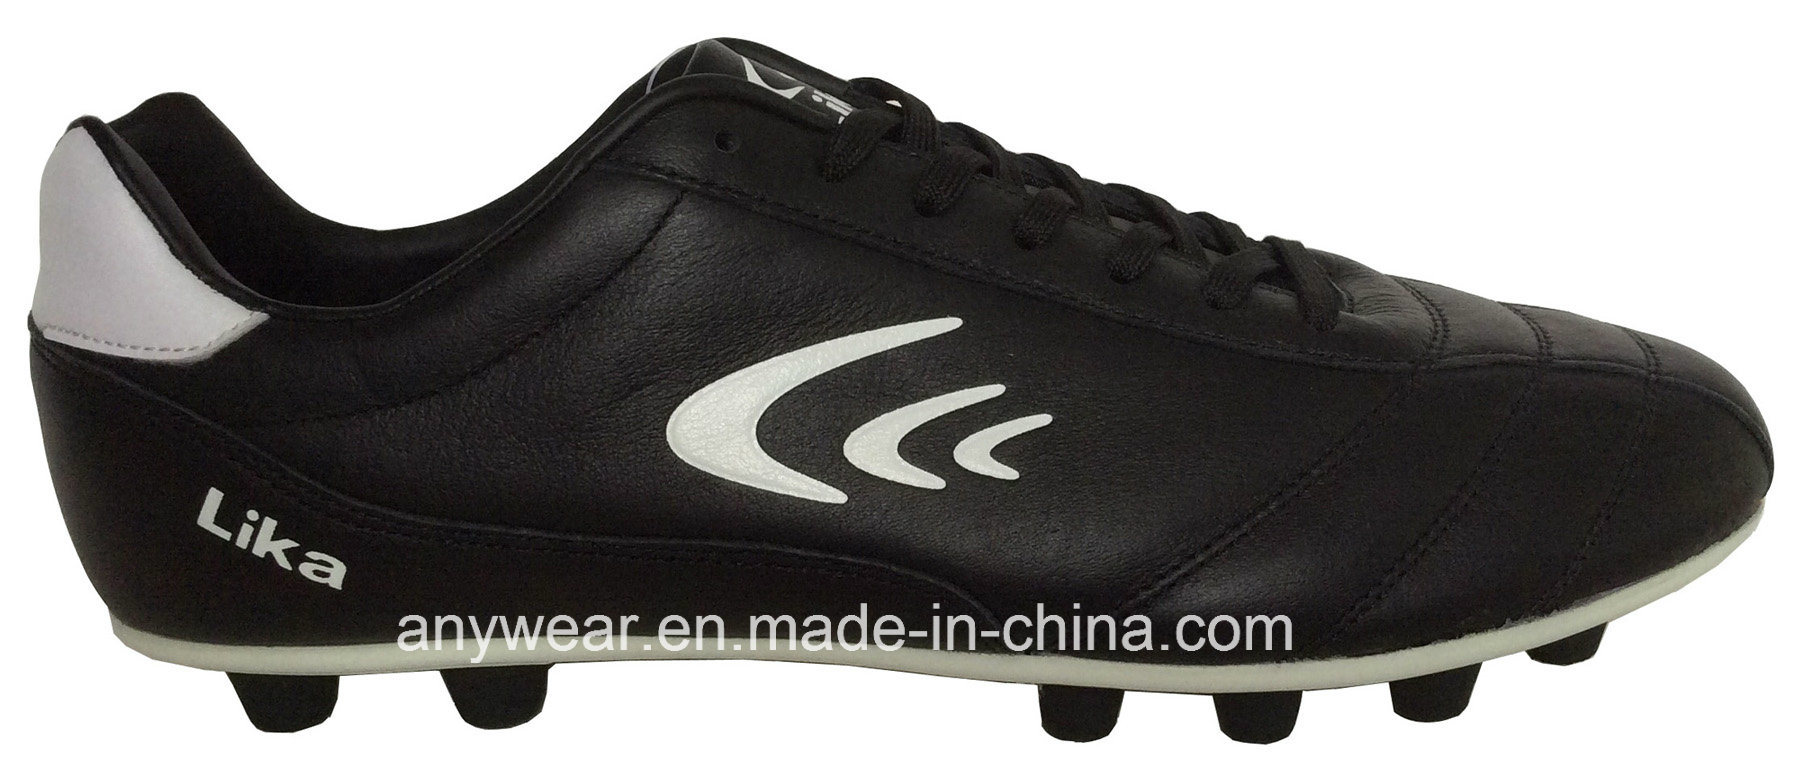 7af723dfa62 China Men′s Soccer Football Boots with Kangaroo Leather Shoes (815-6514) -  China Shoe